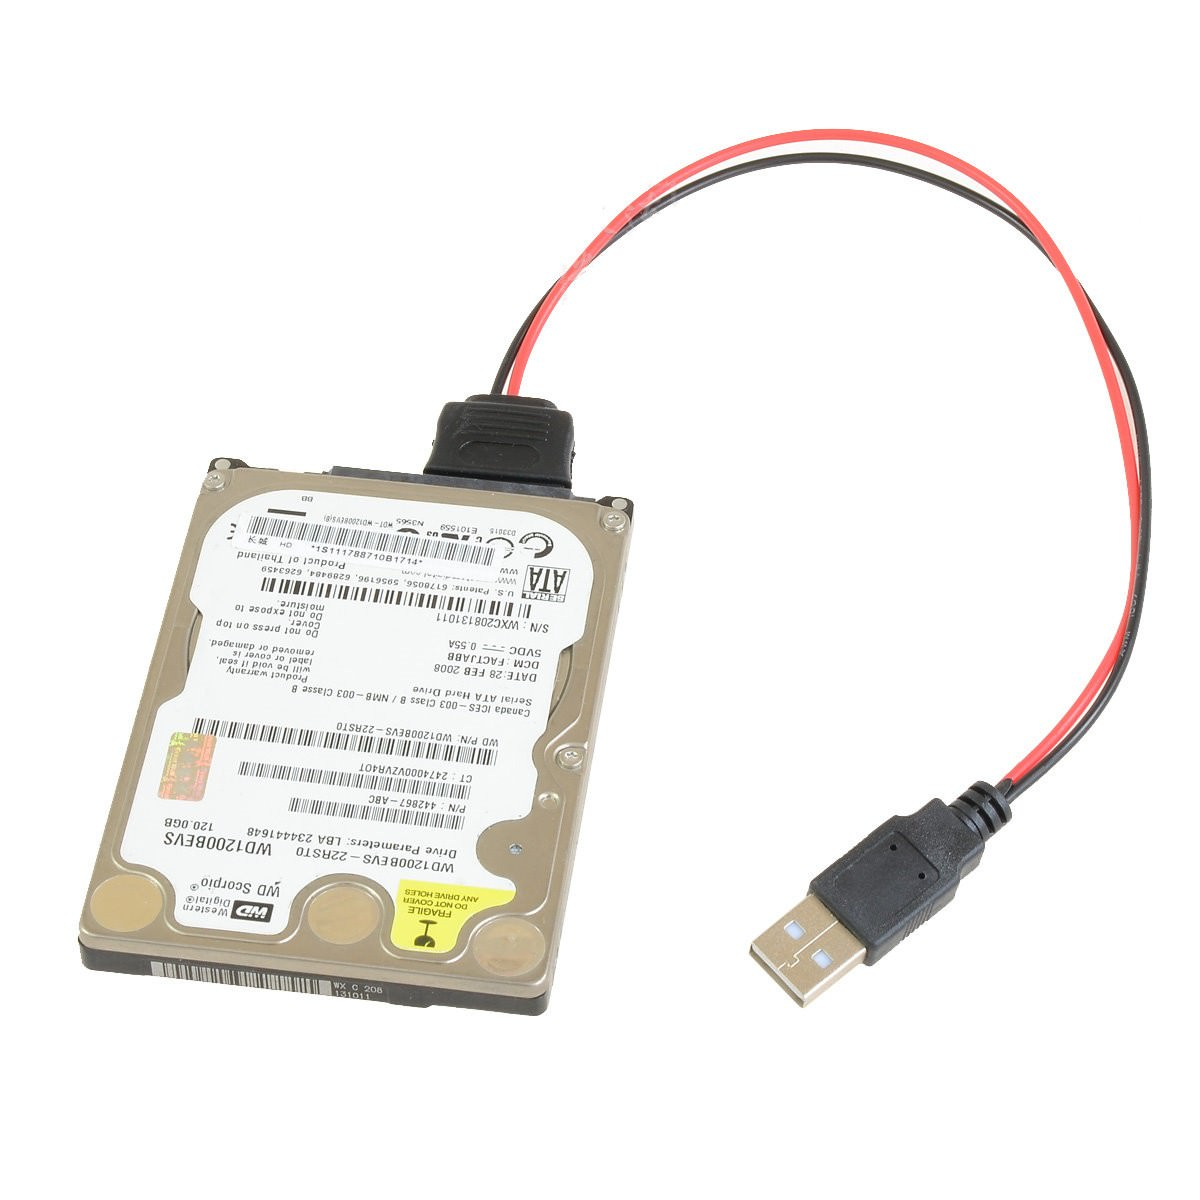 USB_to_2.5_SSD_5 Pin_SATA_Power_Adapter_Cable_%2820cm%29_%281%29__21928_zoom usb to 2 5 ssd 5 pin sata power adapter cable (20cm) moddiy com sata power wiring diagram at bakdesigns.co